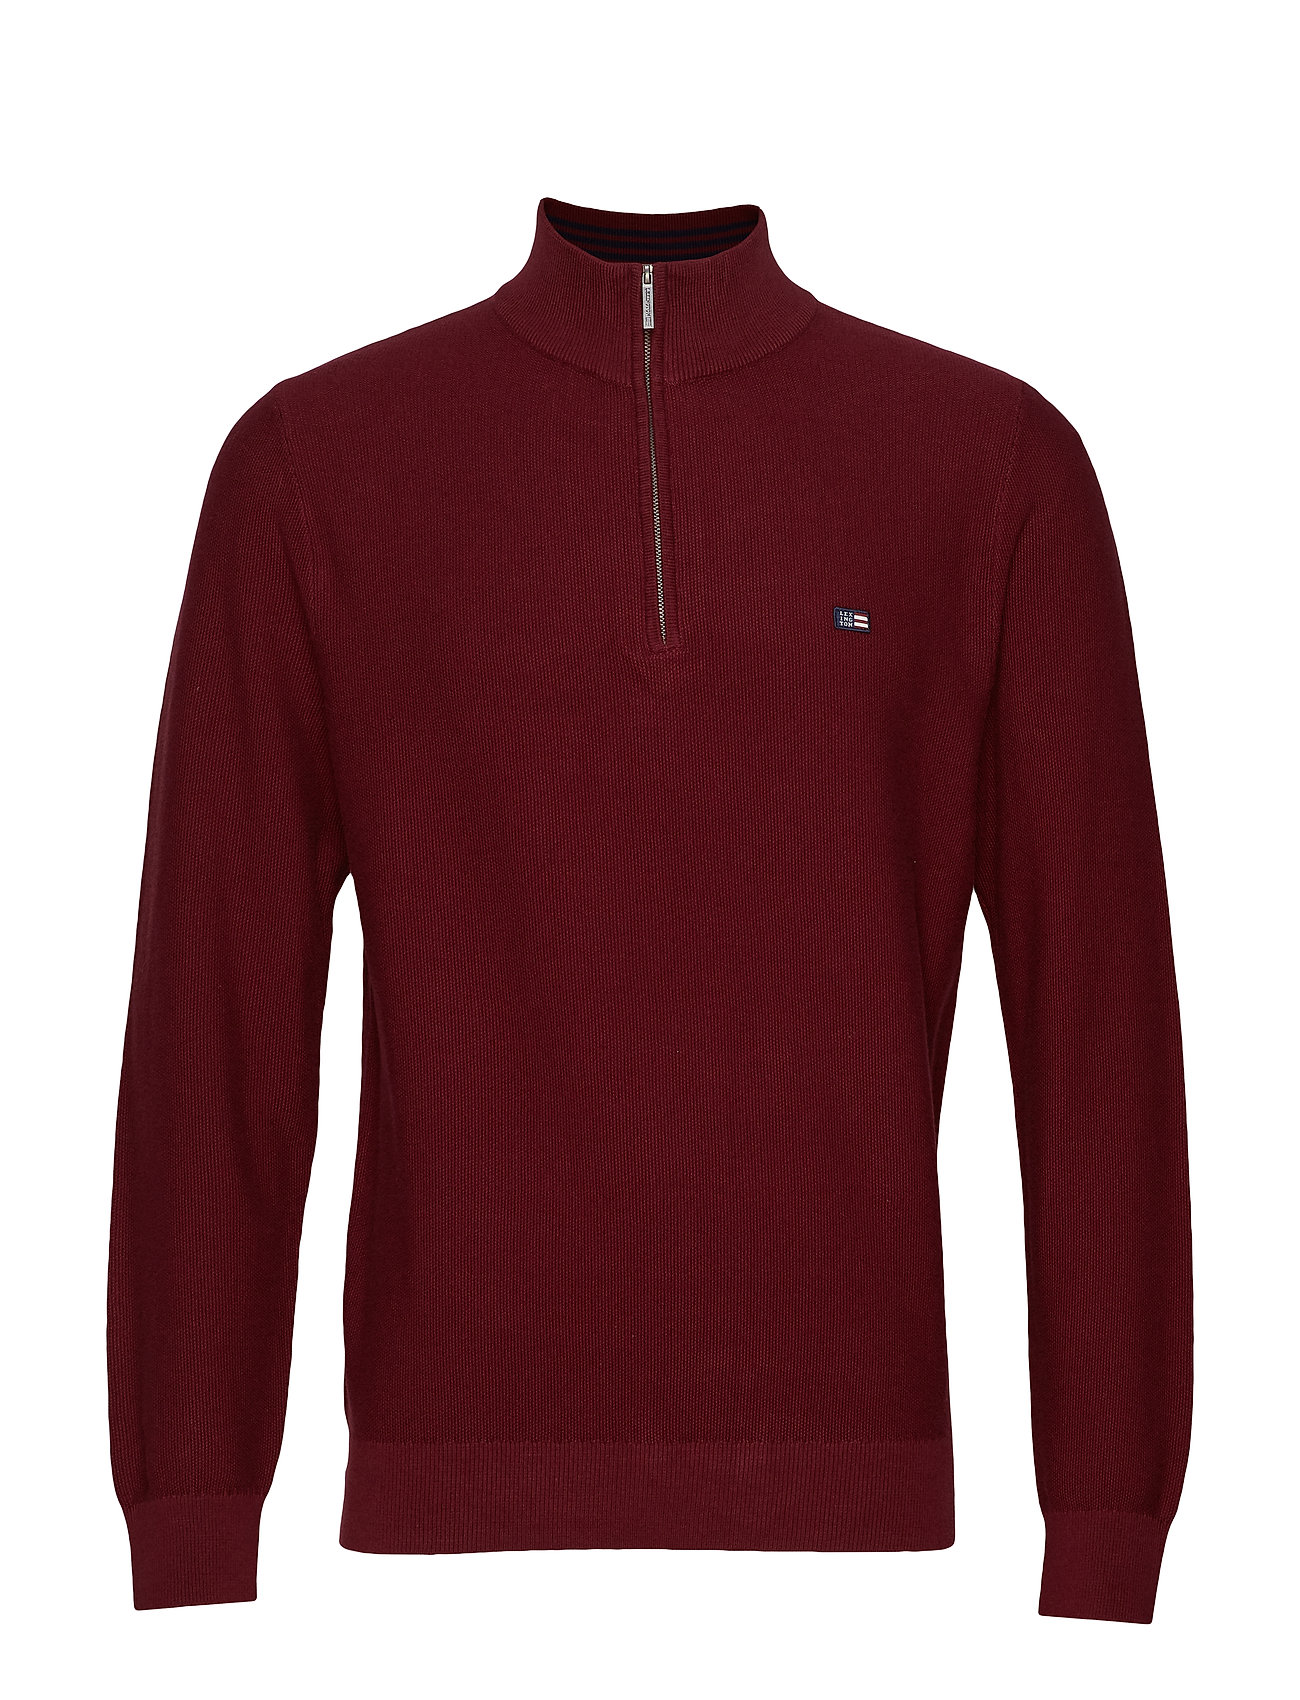 Lexington Clothing Clay Half Zip Sweater - DARK RED